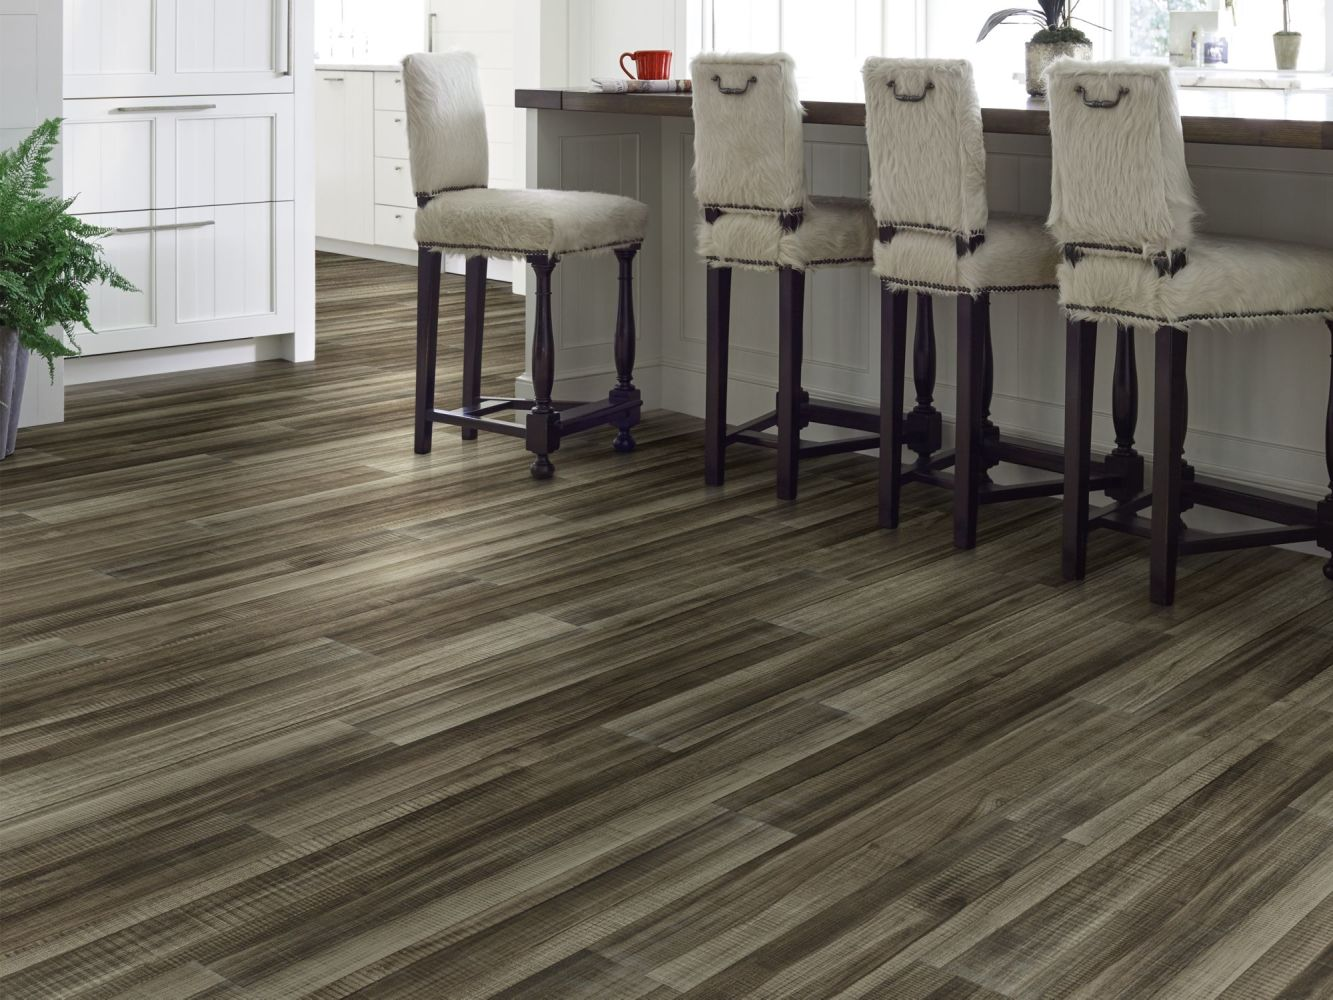 Shaw Floors 5th And Main Symbiotic 20 Bronzite 07004_5M303